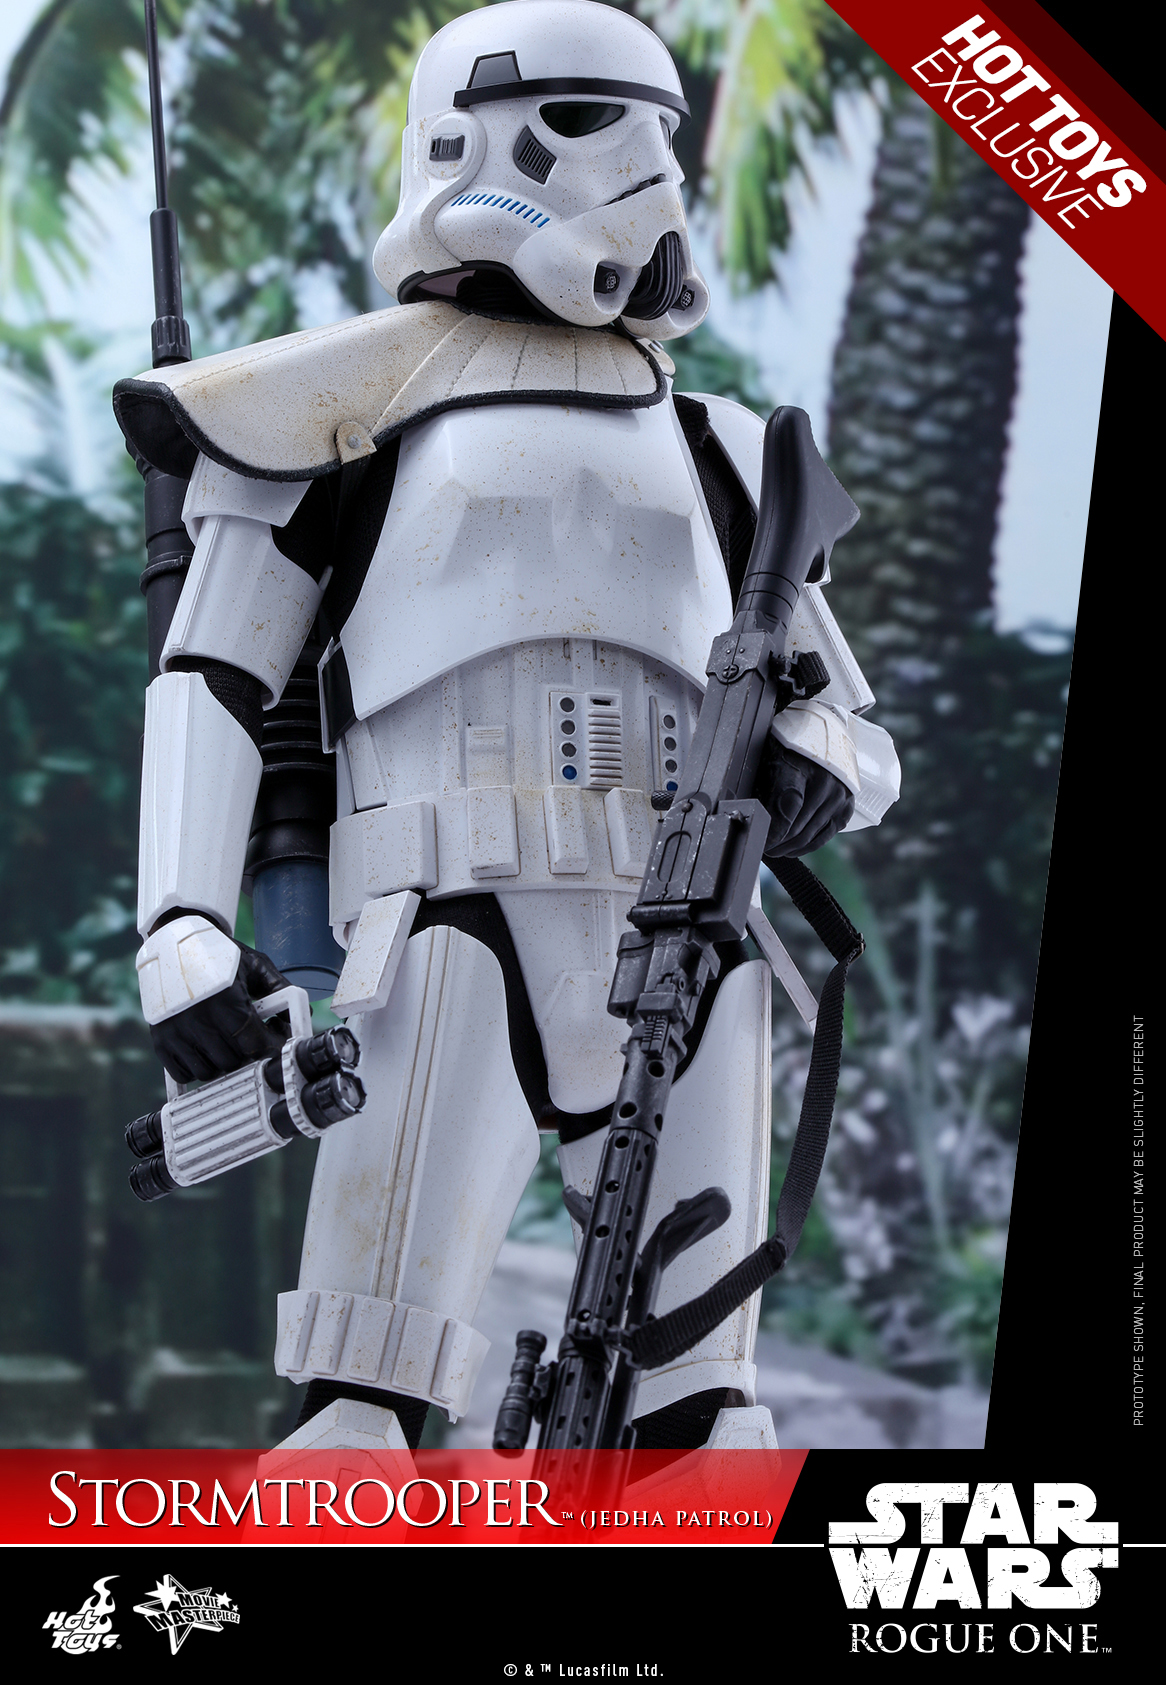 201609_hot-toys-rogue-one-stormtrooper-jedha-patrol-collectible-1